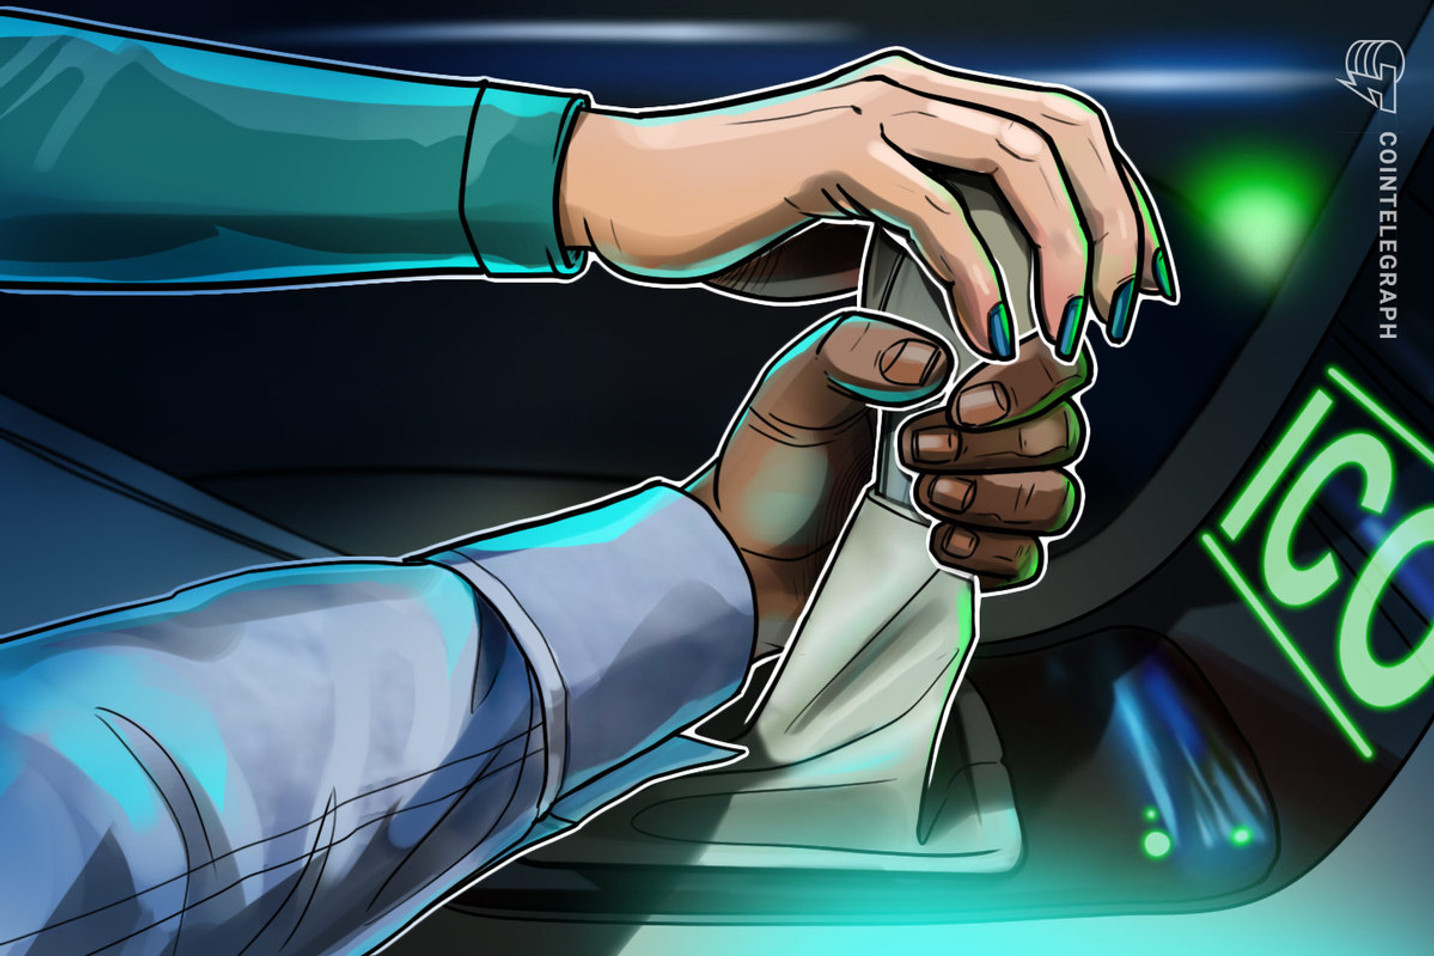 US Firm Plans $100 Million ICO to Fund Electric Vehicle Production in Africa